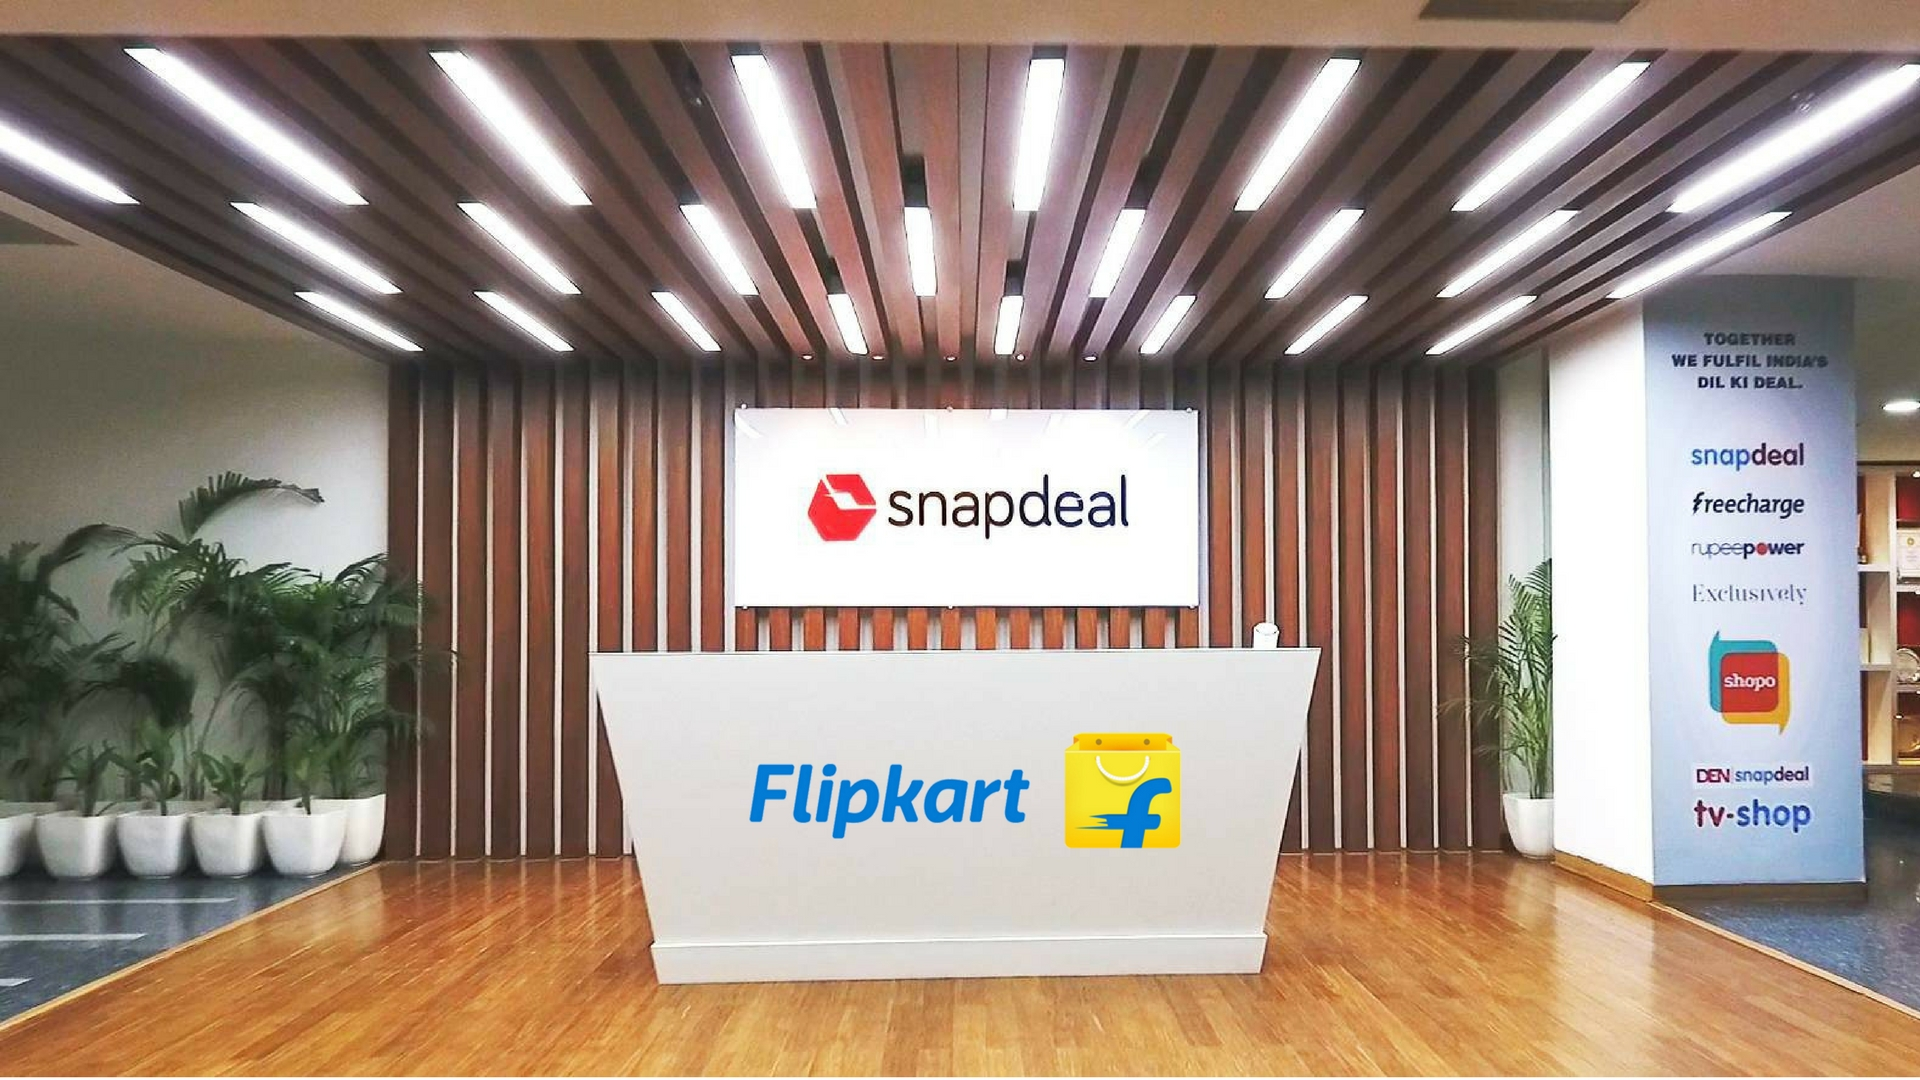 c9001f1d6dd Snapdeal Agrees to Flipkart s Revised Offer of  950 Million But ...